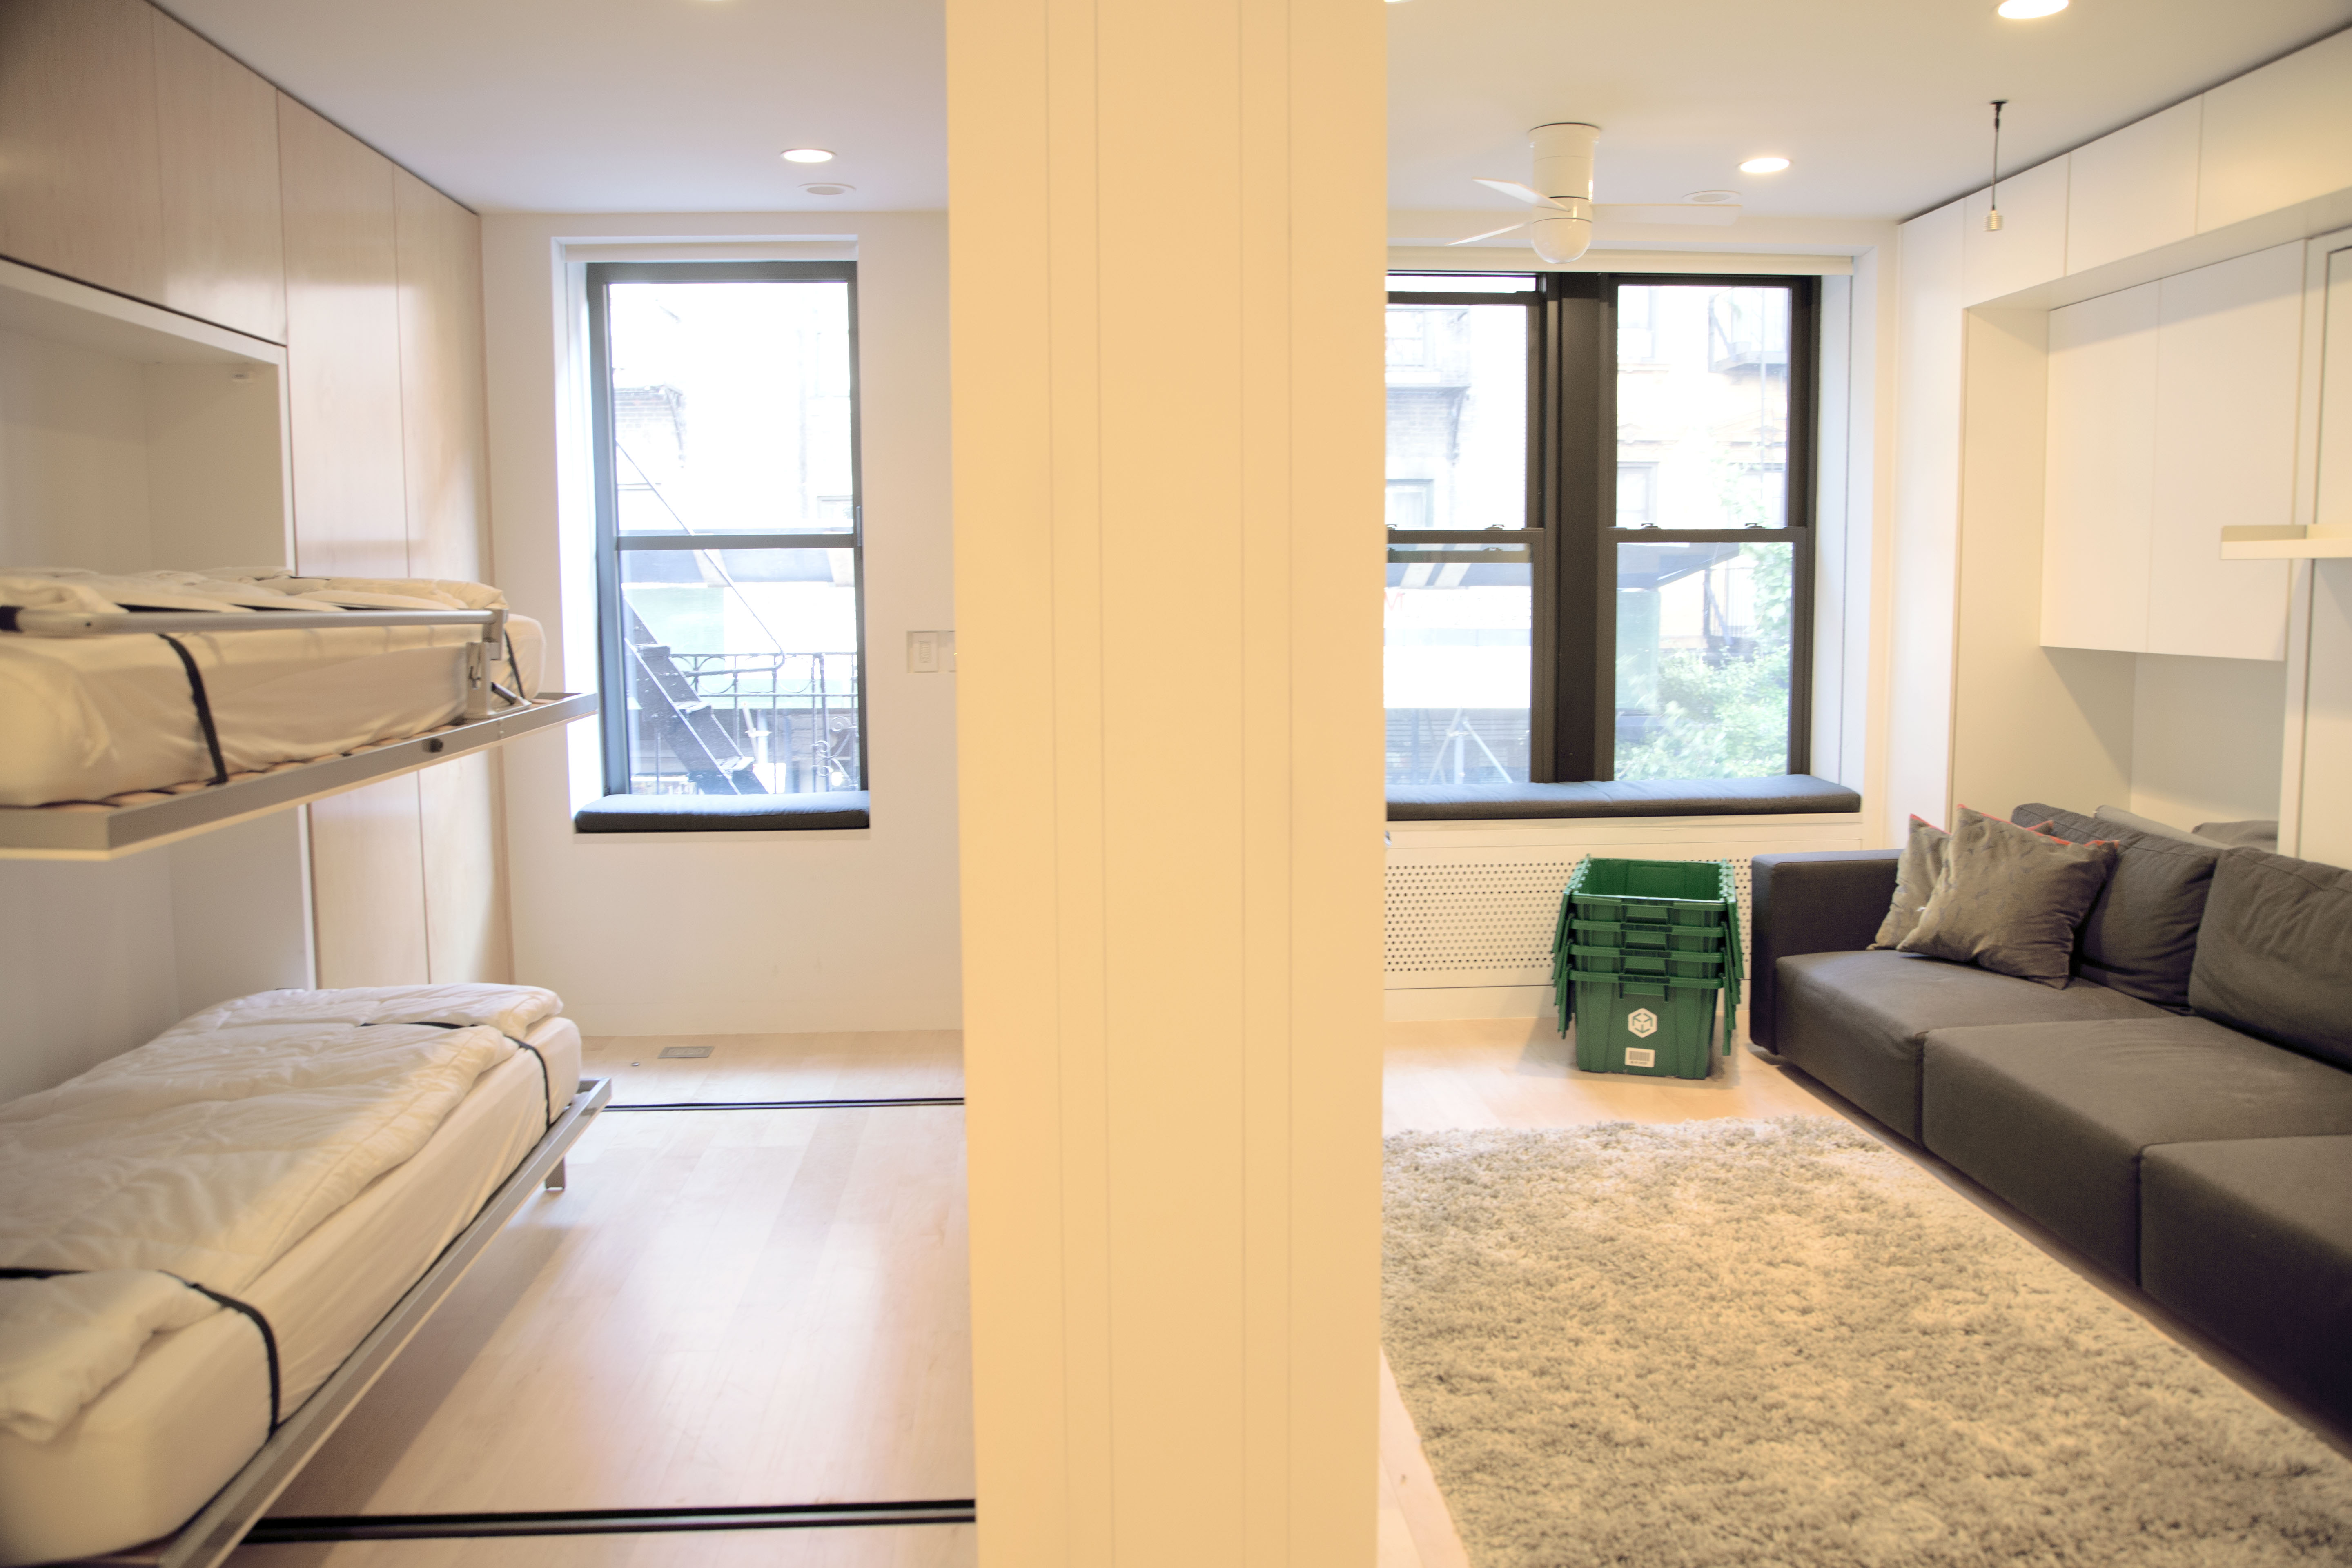 Apartment Furniture Nyc Beautifull Gallery Many Ideas To